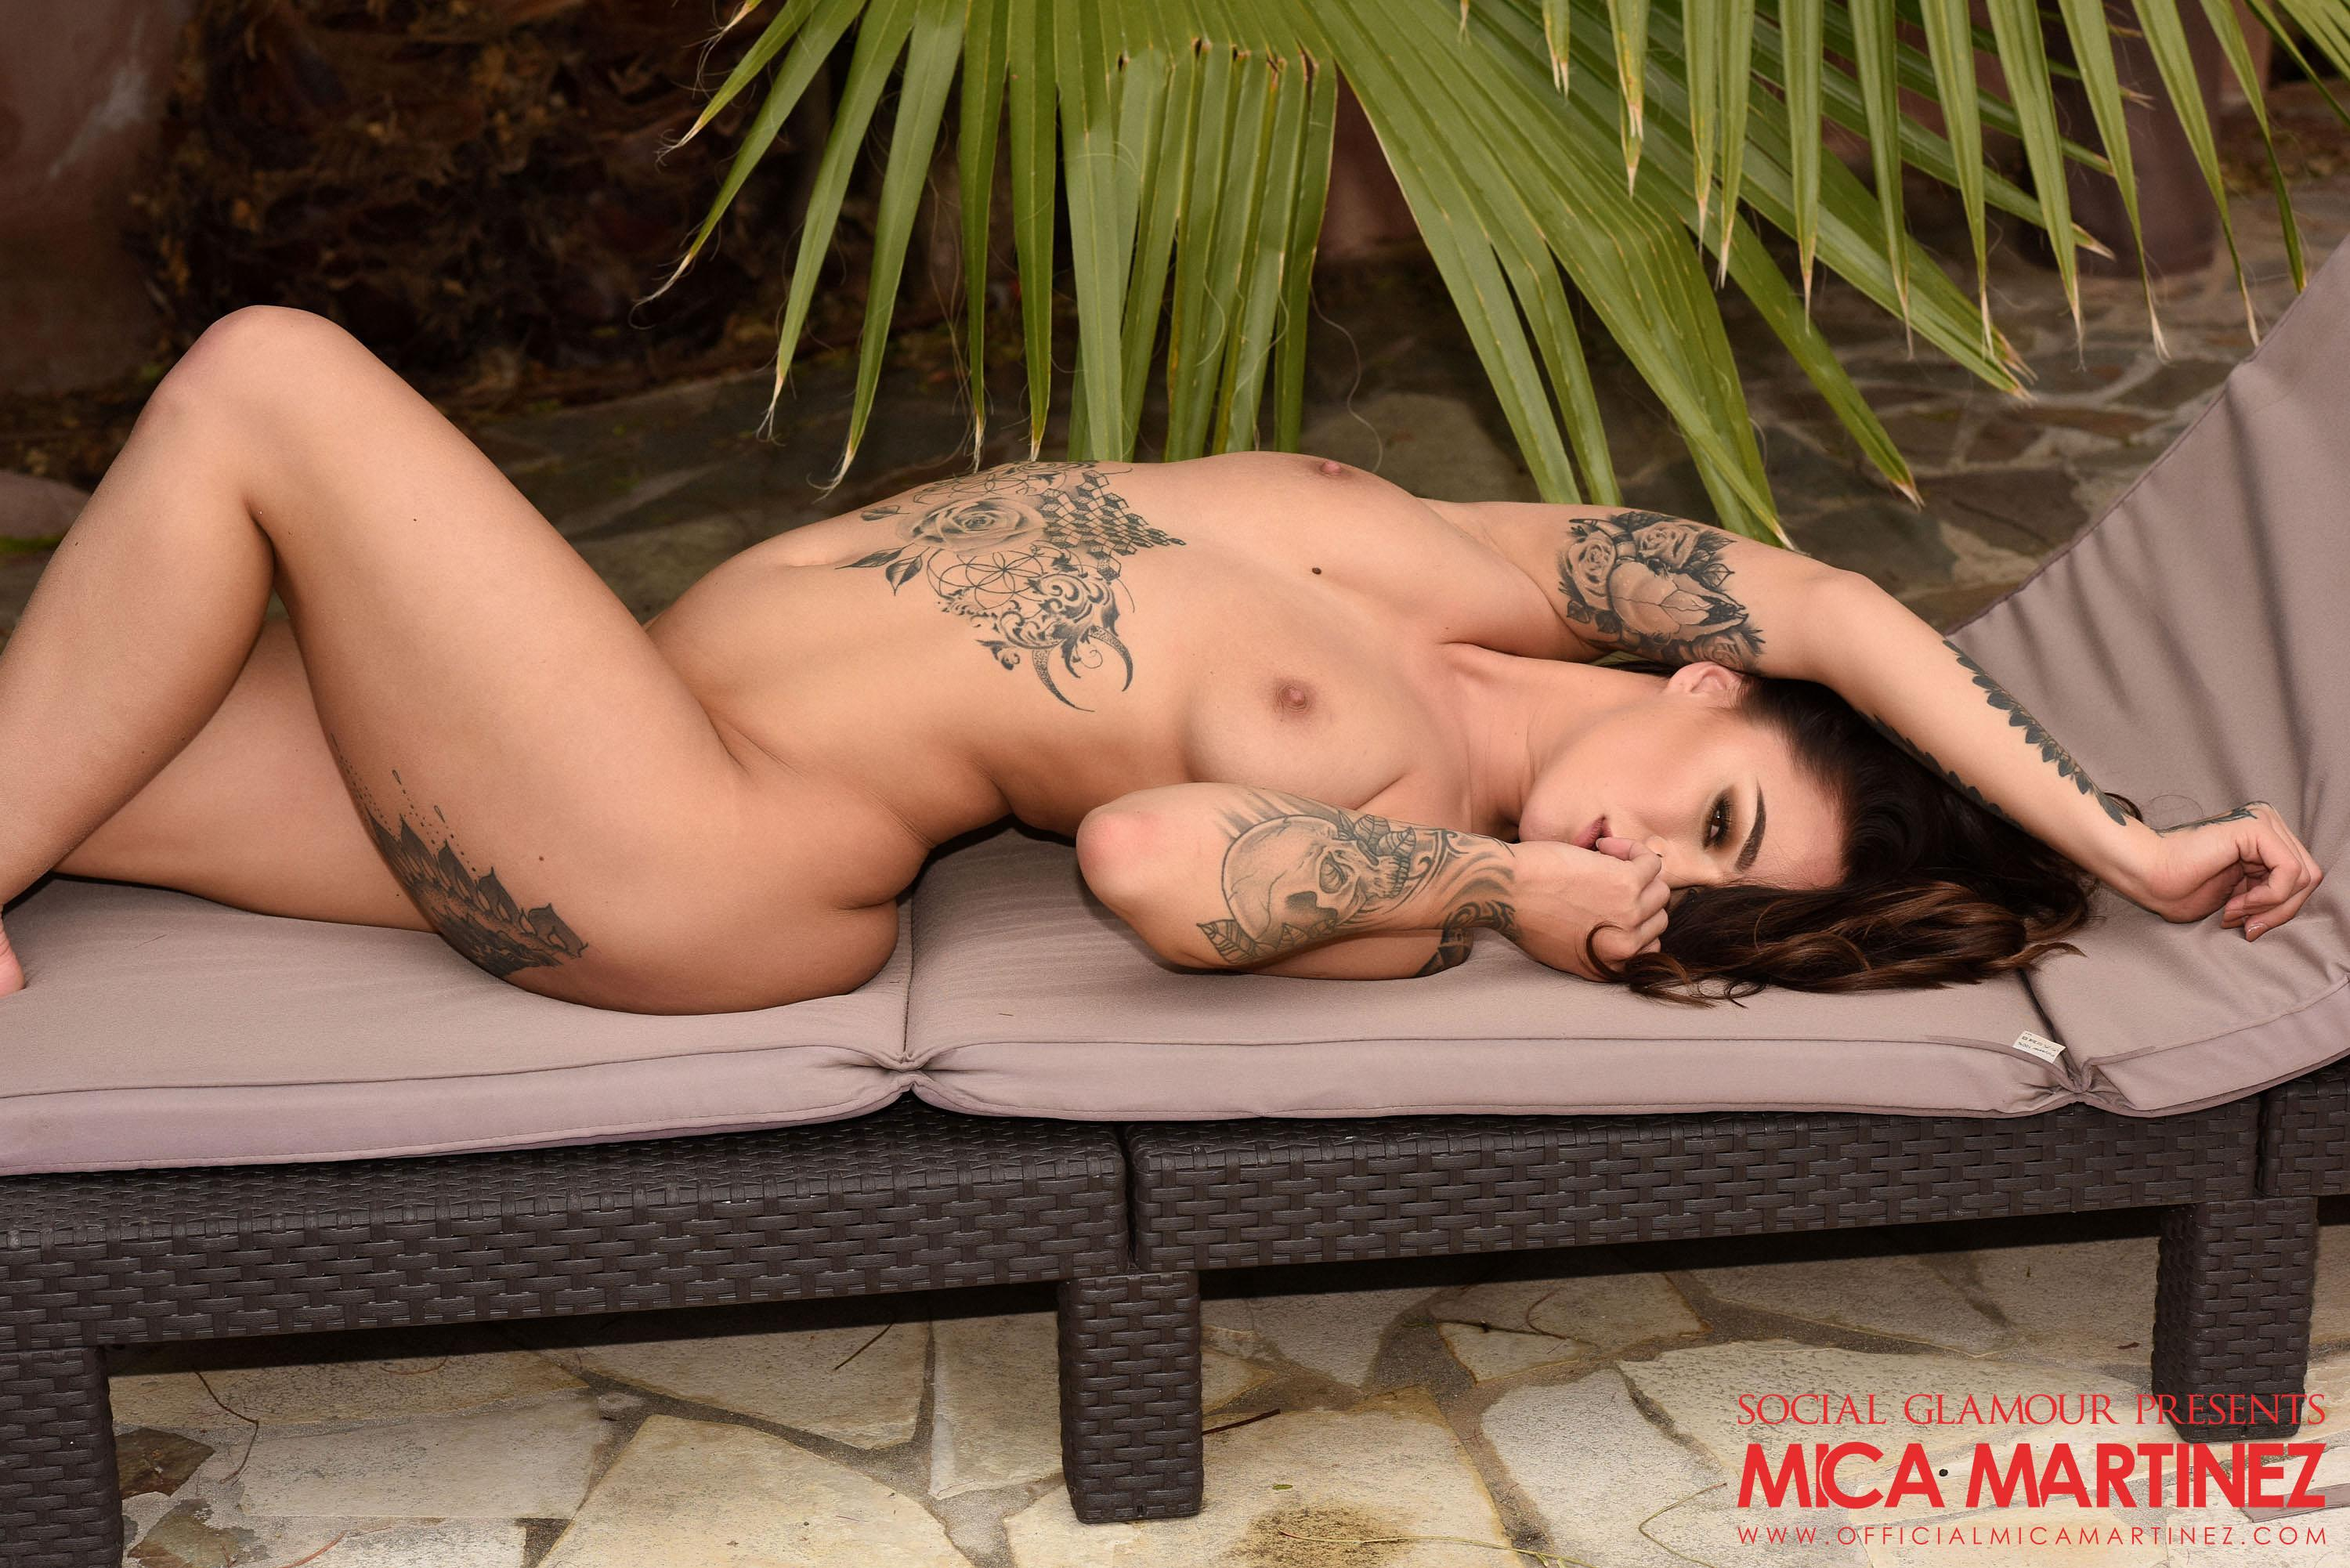 Mica martinez pussy porn in most relevant